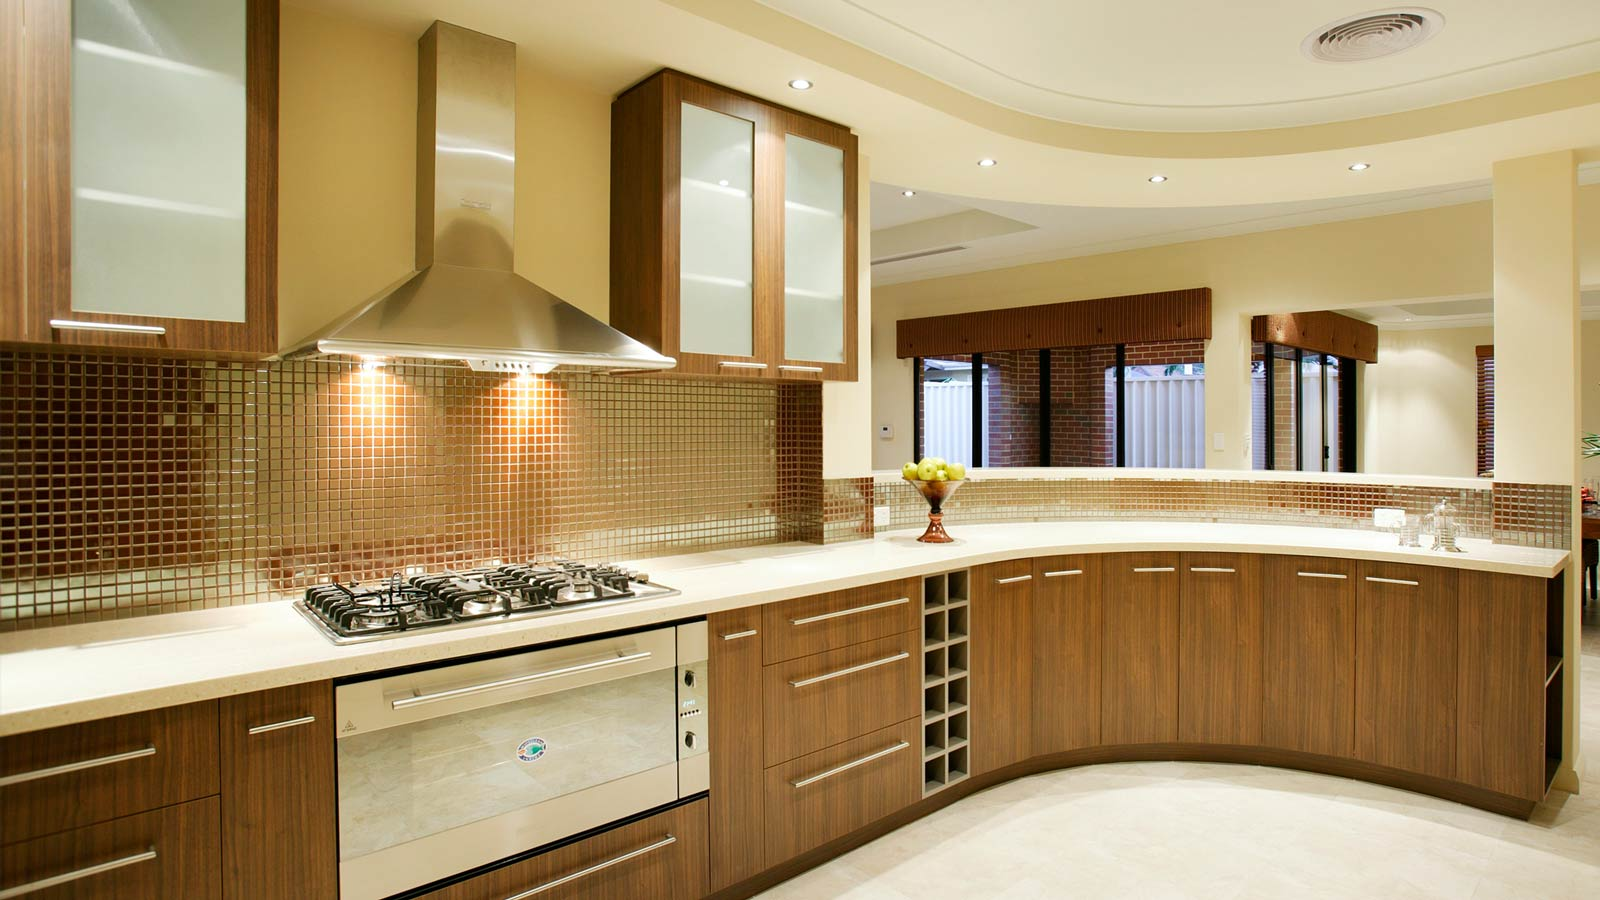 Pros and Cons of Modular Kitchen